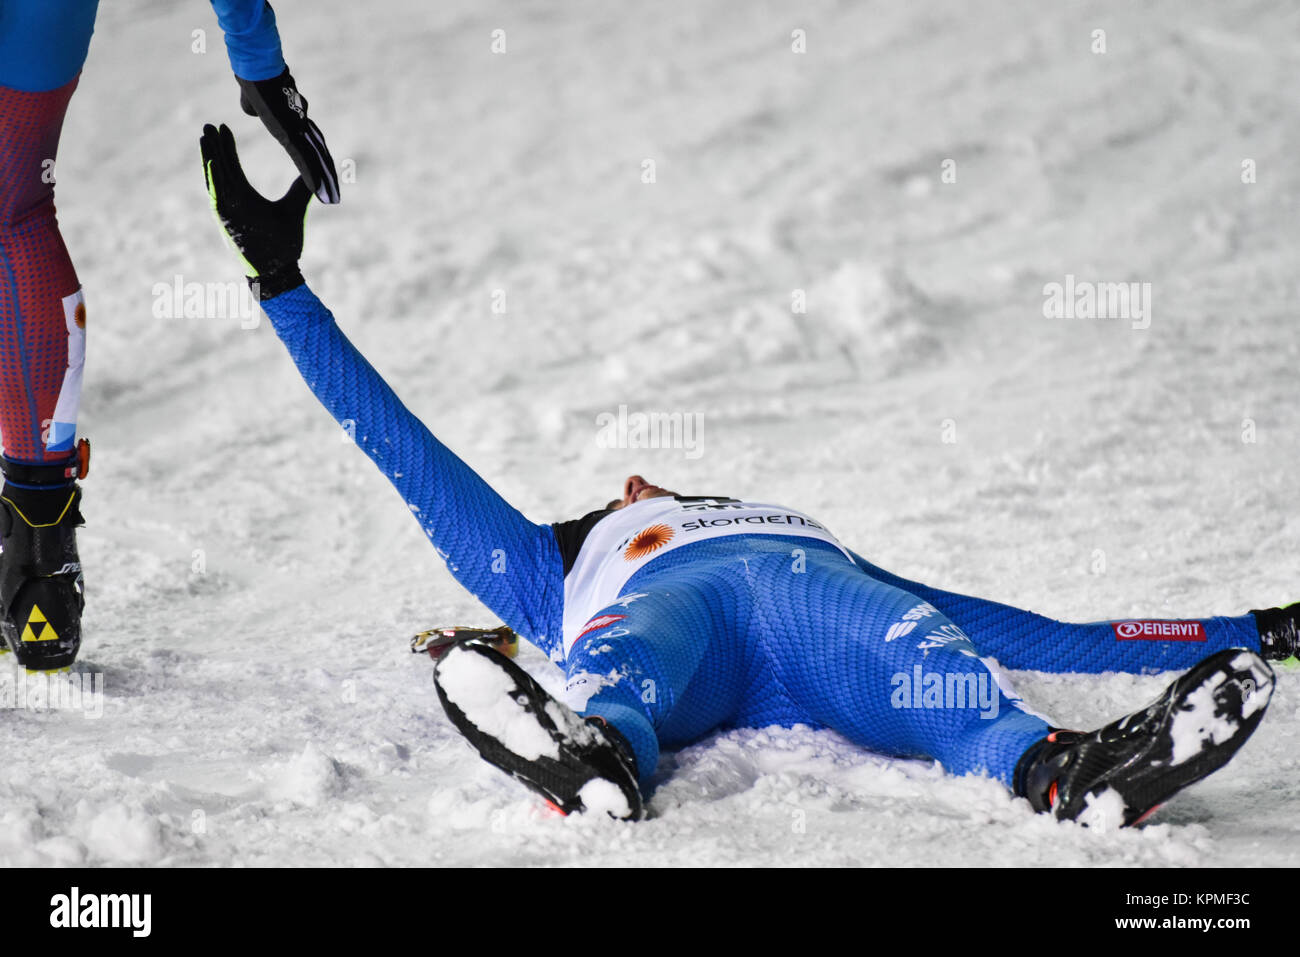 Italy's Federico Pellegrino (lying on snow) shakes hands with Russia's Sergey Ustiugov after winning the - Stock Image